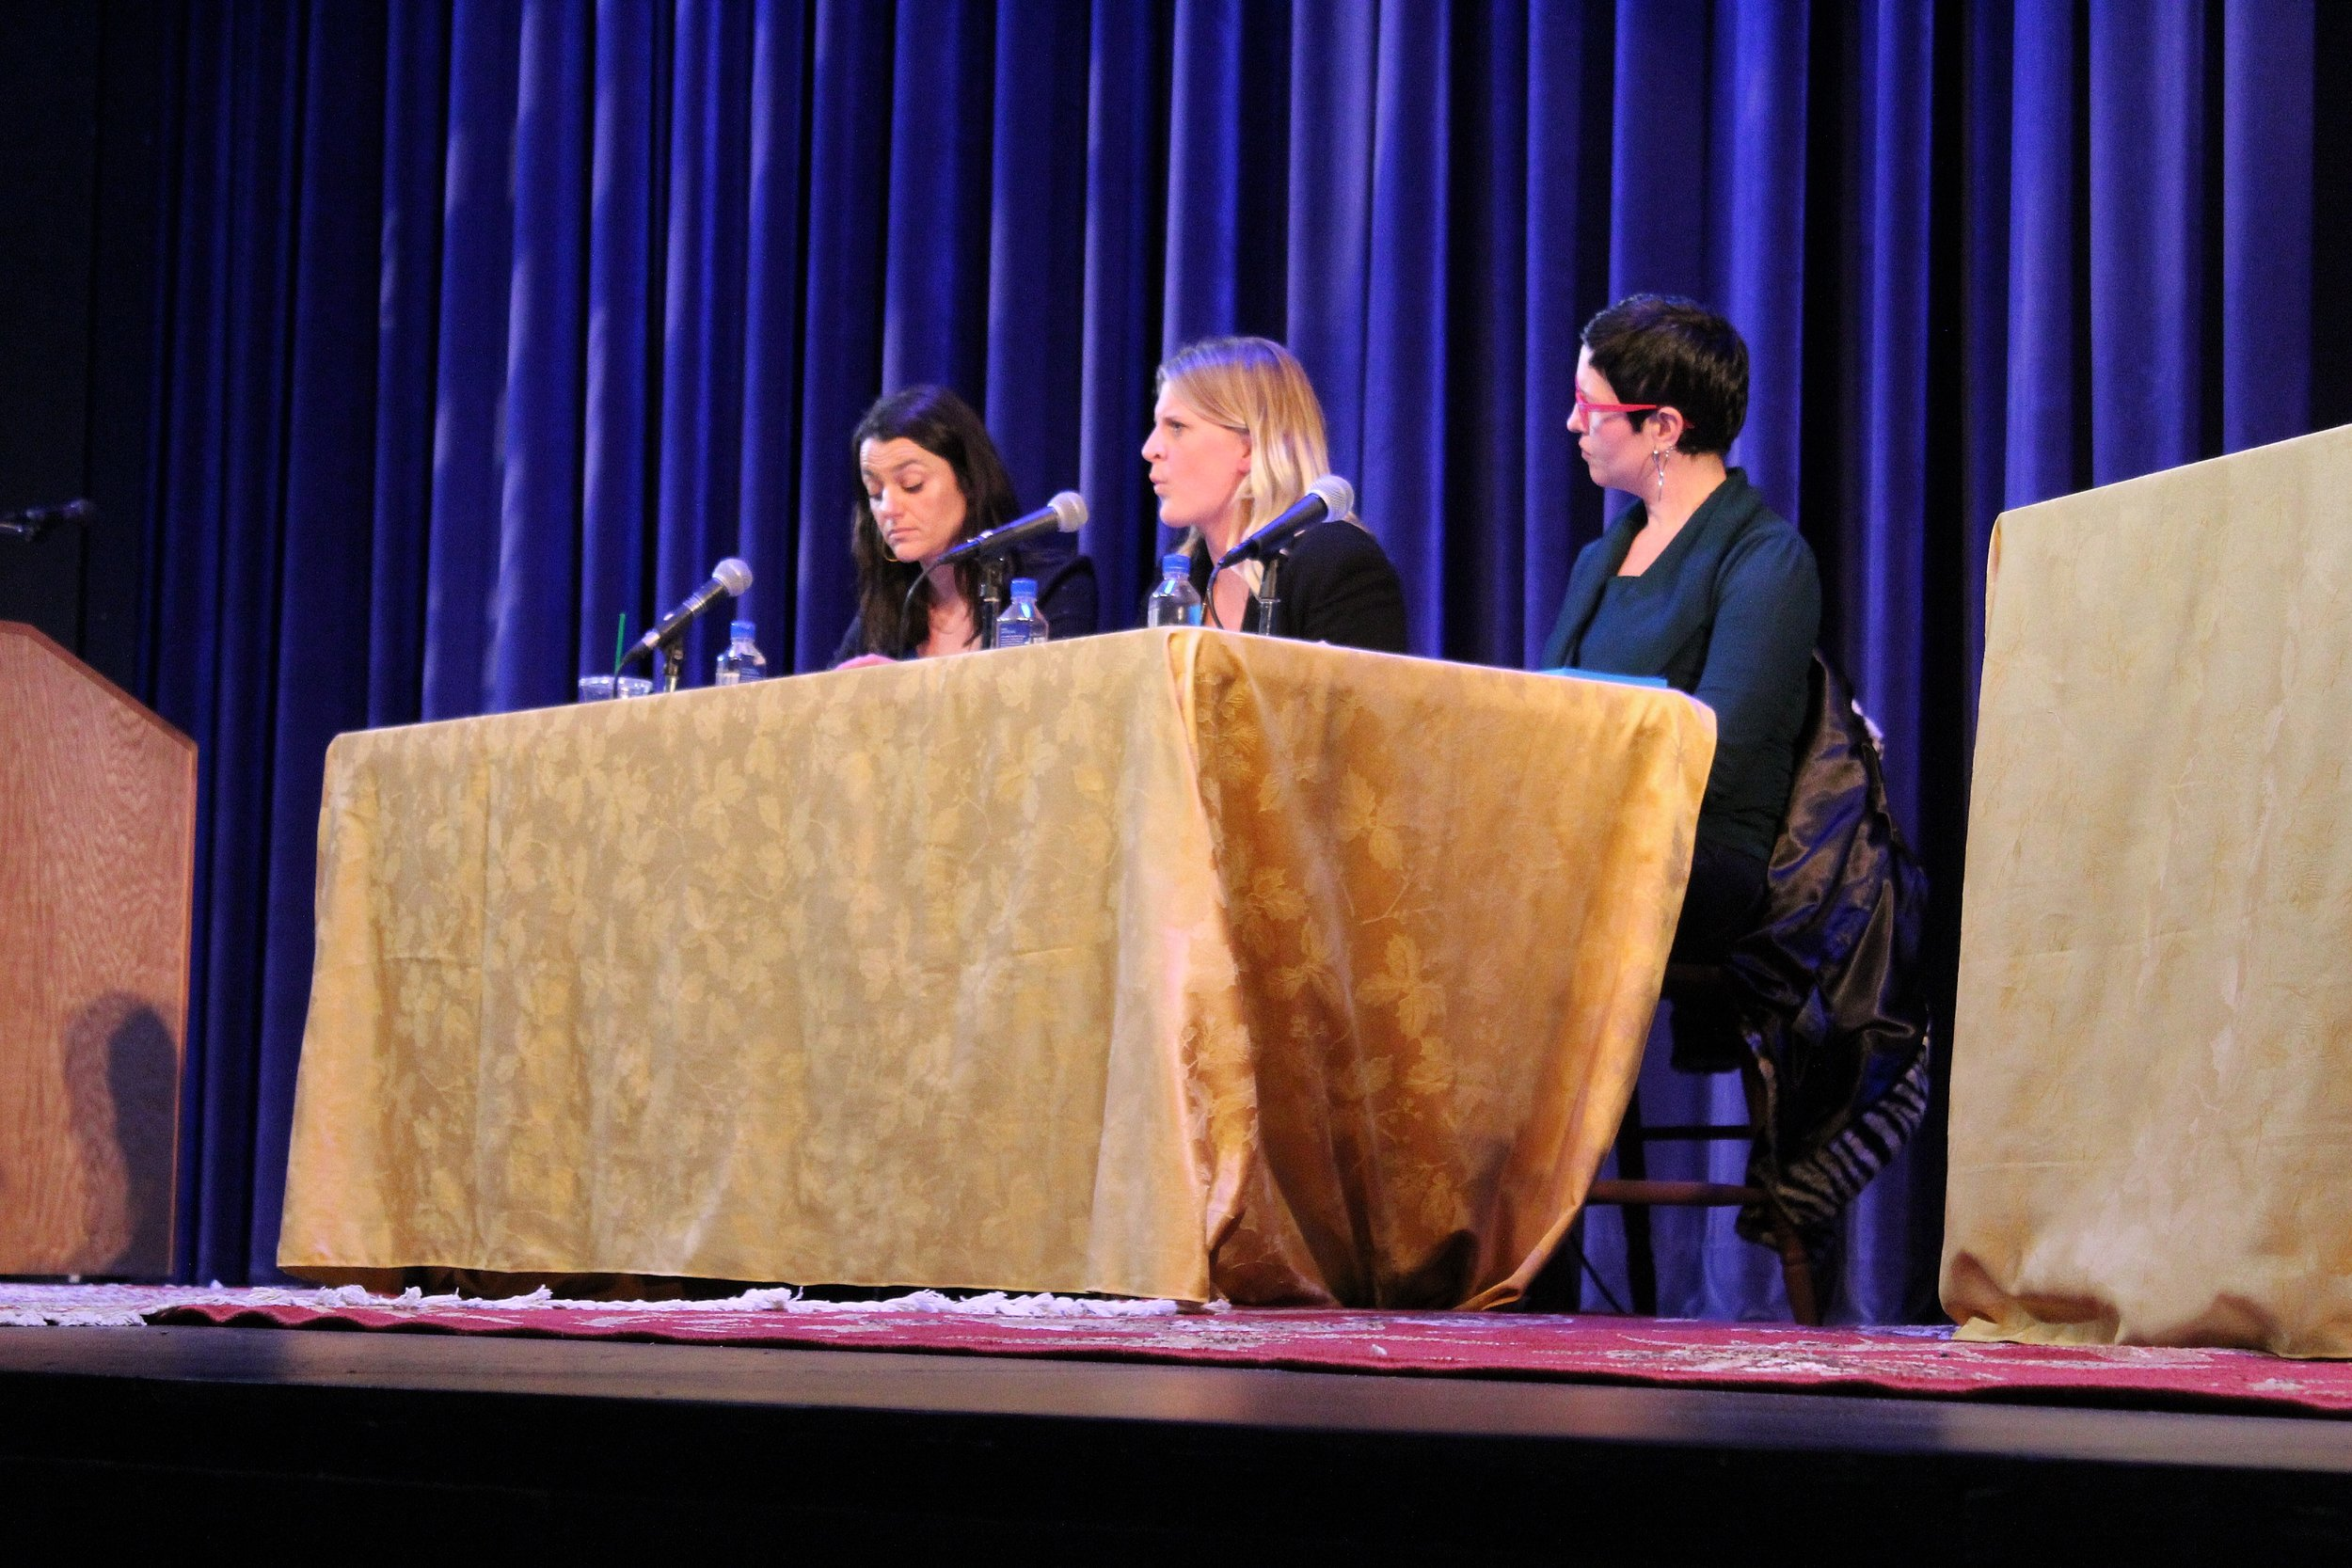 From left to right, panelists Annika Speer, Kelli Coleman-Moore, and Rebecca Prather.